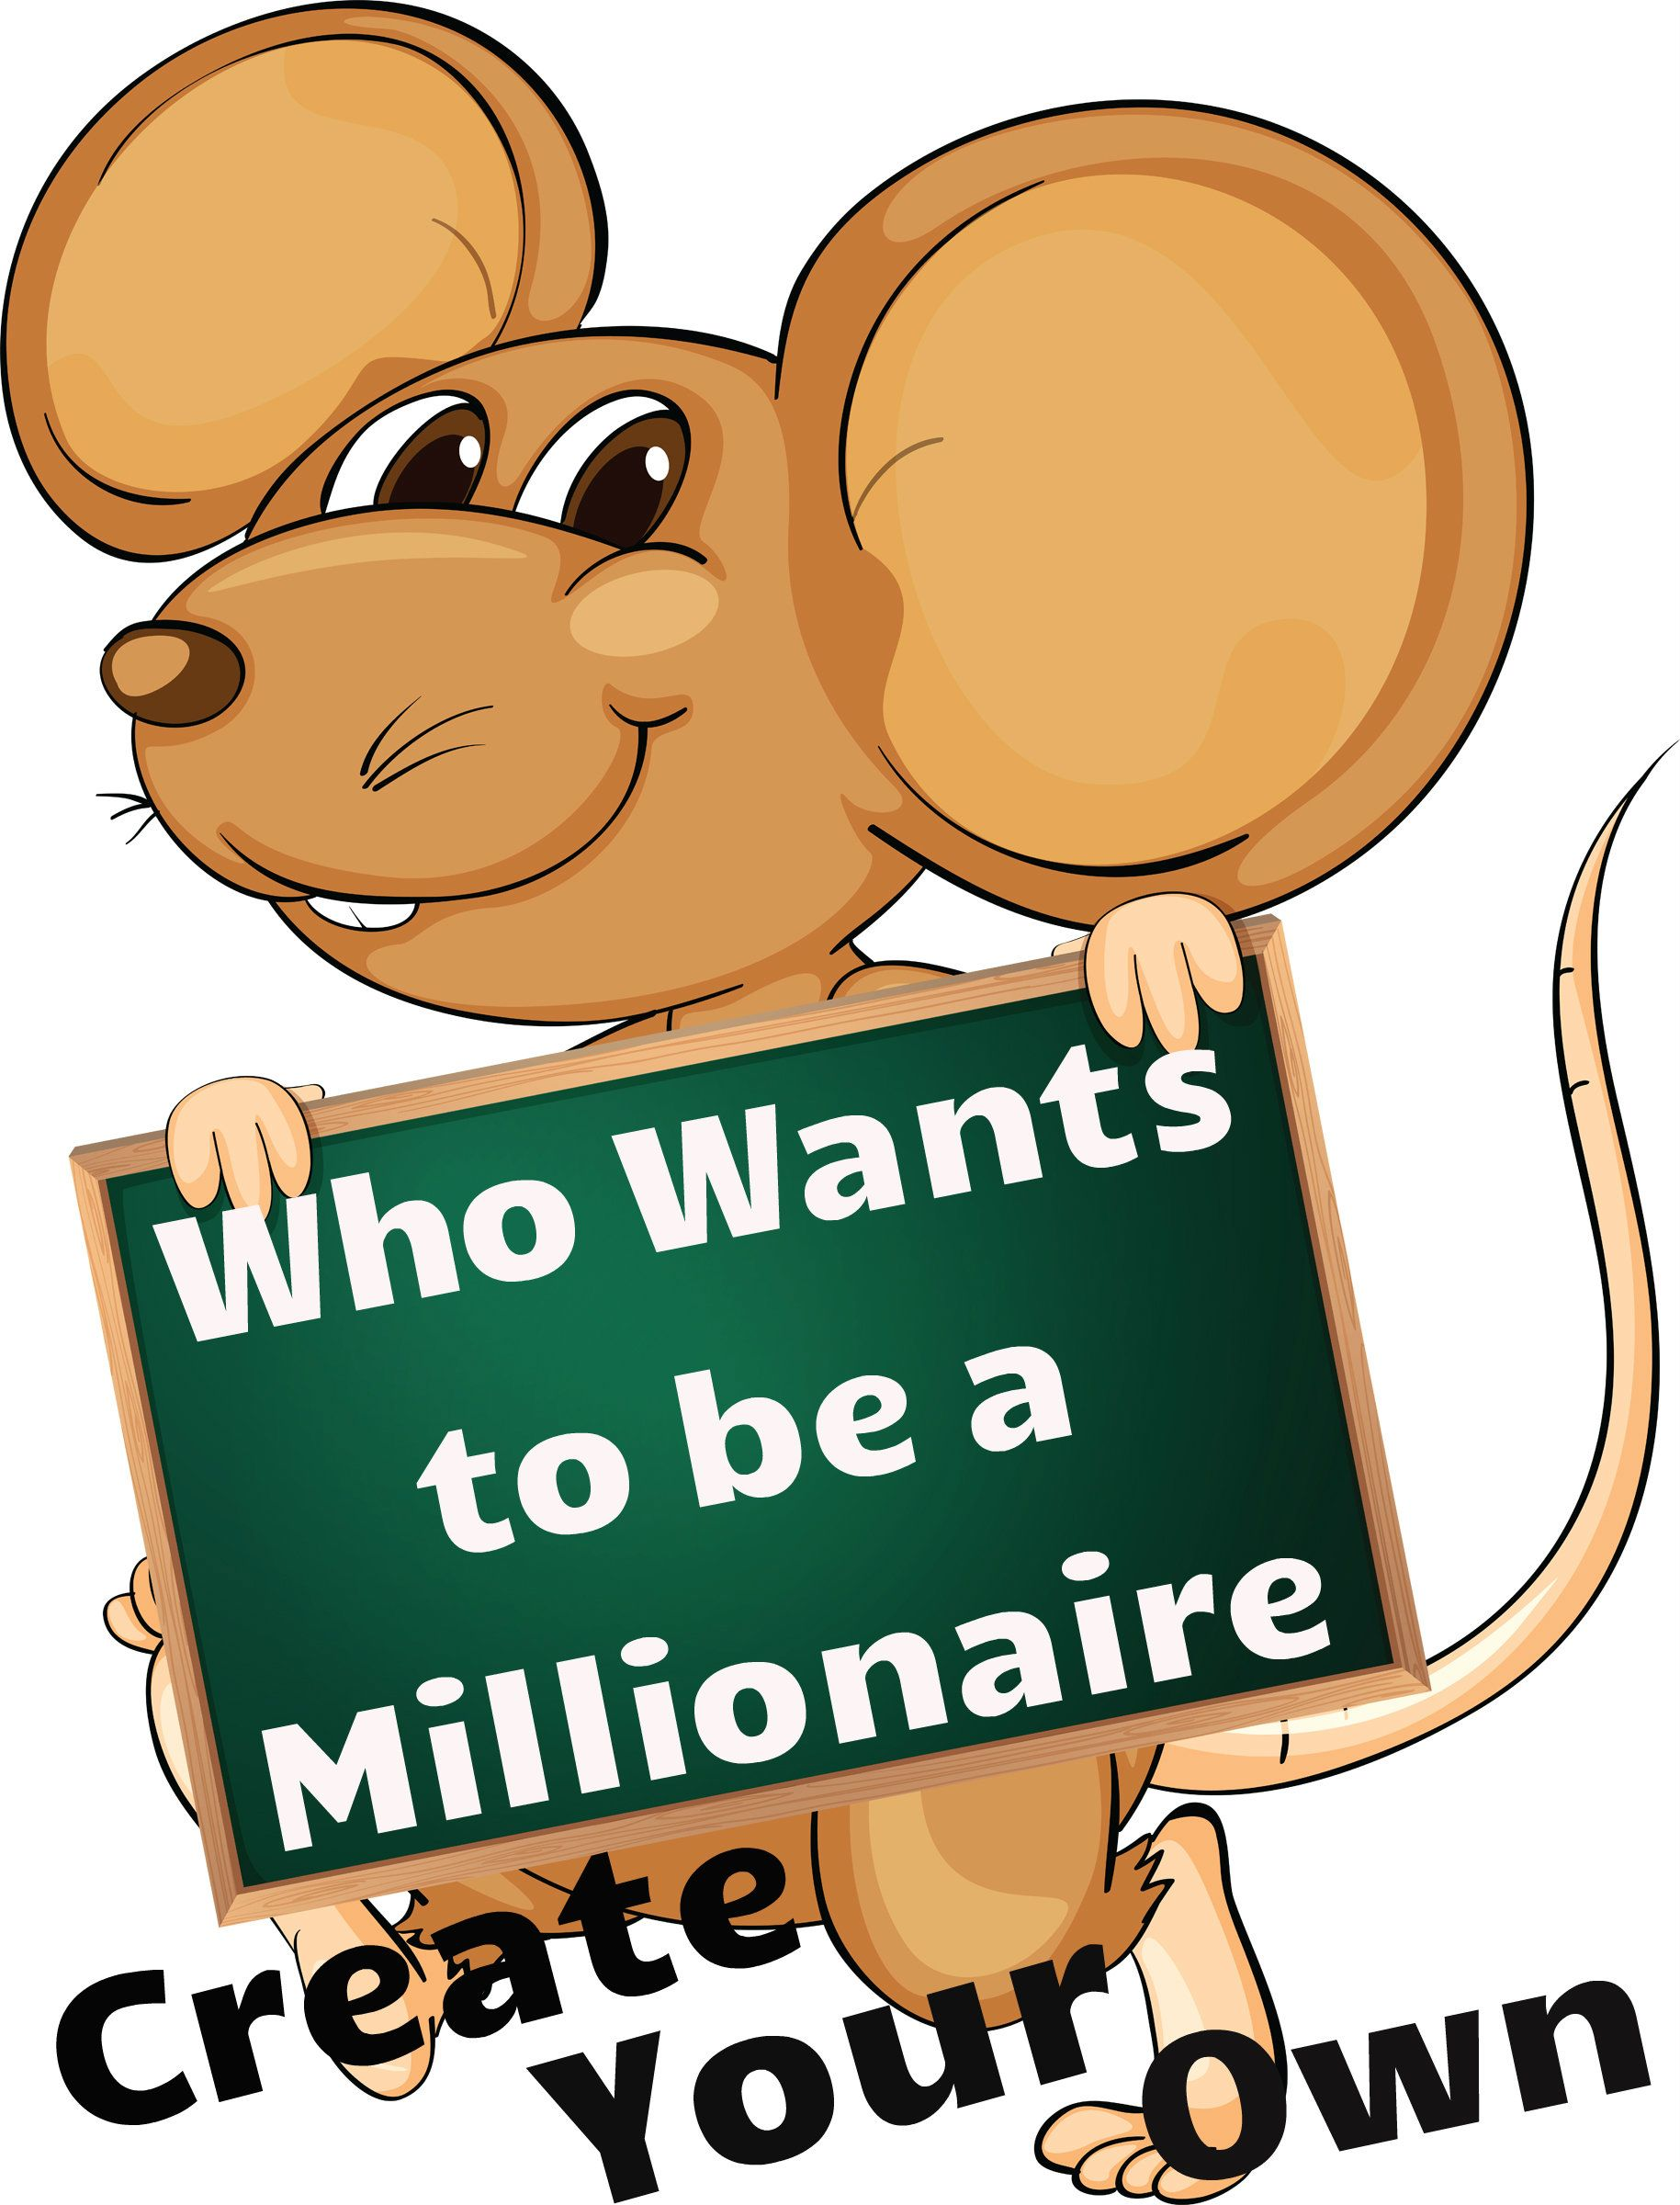 Who Want To Be A Millionaire Free Game Template Create Your Won - Unique powerpoint who wants to be a millionaire game template design